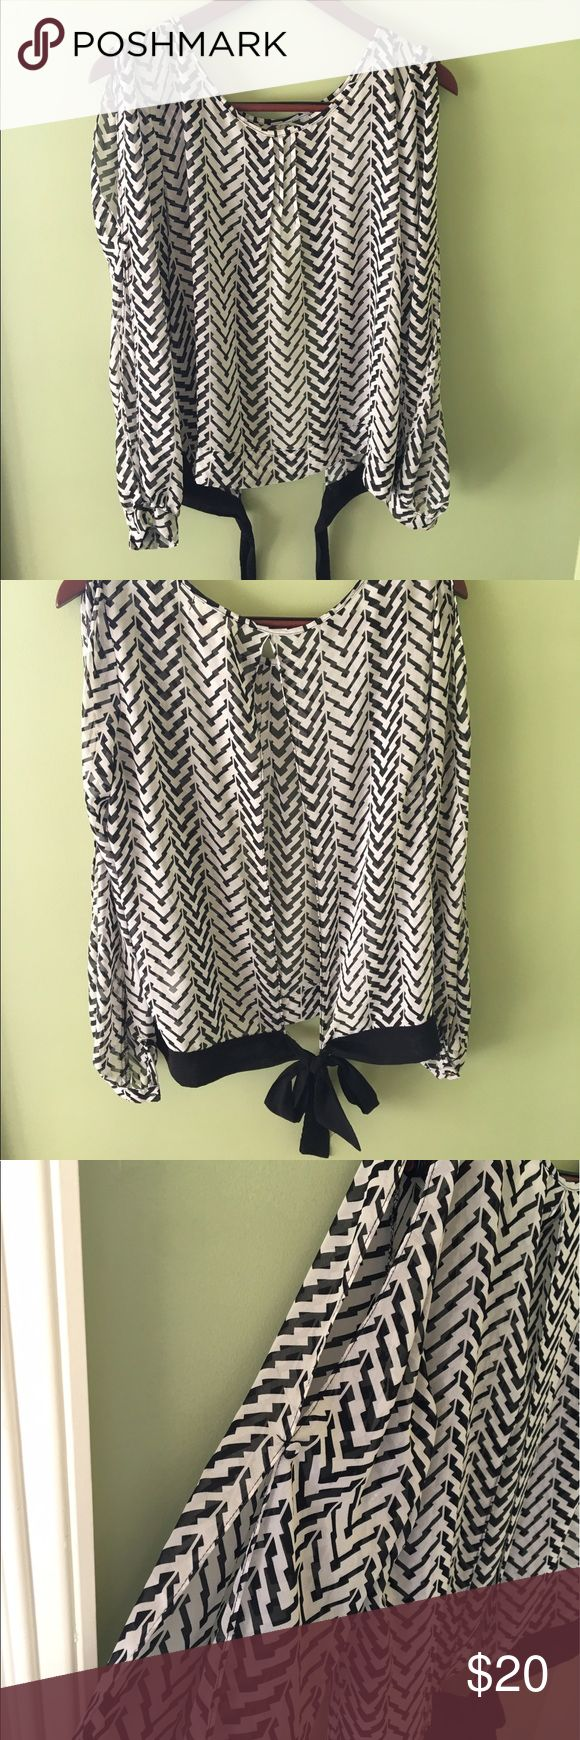 Umgee chevron blouse Black and white Umgee chevron top with black tie in back. Slits in the sleeves. Size large. Worn, but in GREAT condition! Umgee Tops Blouses